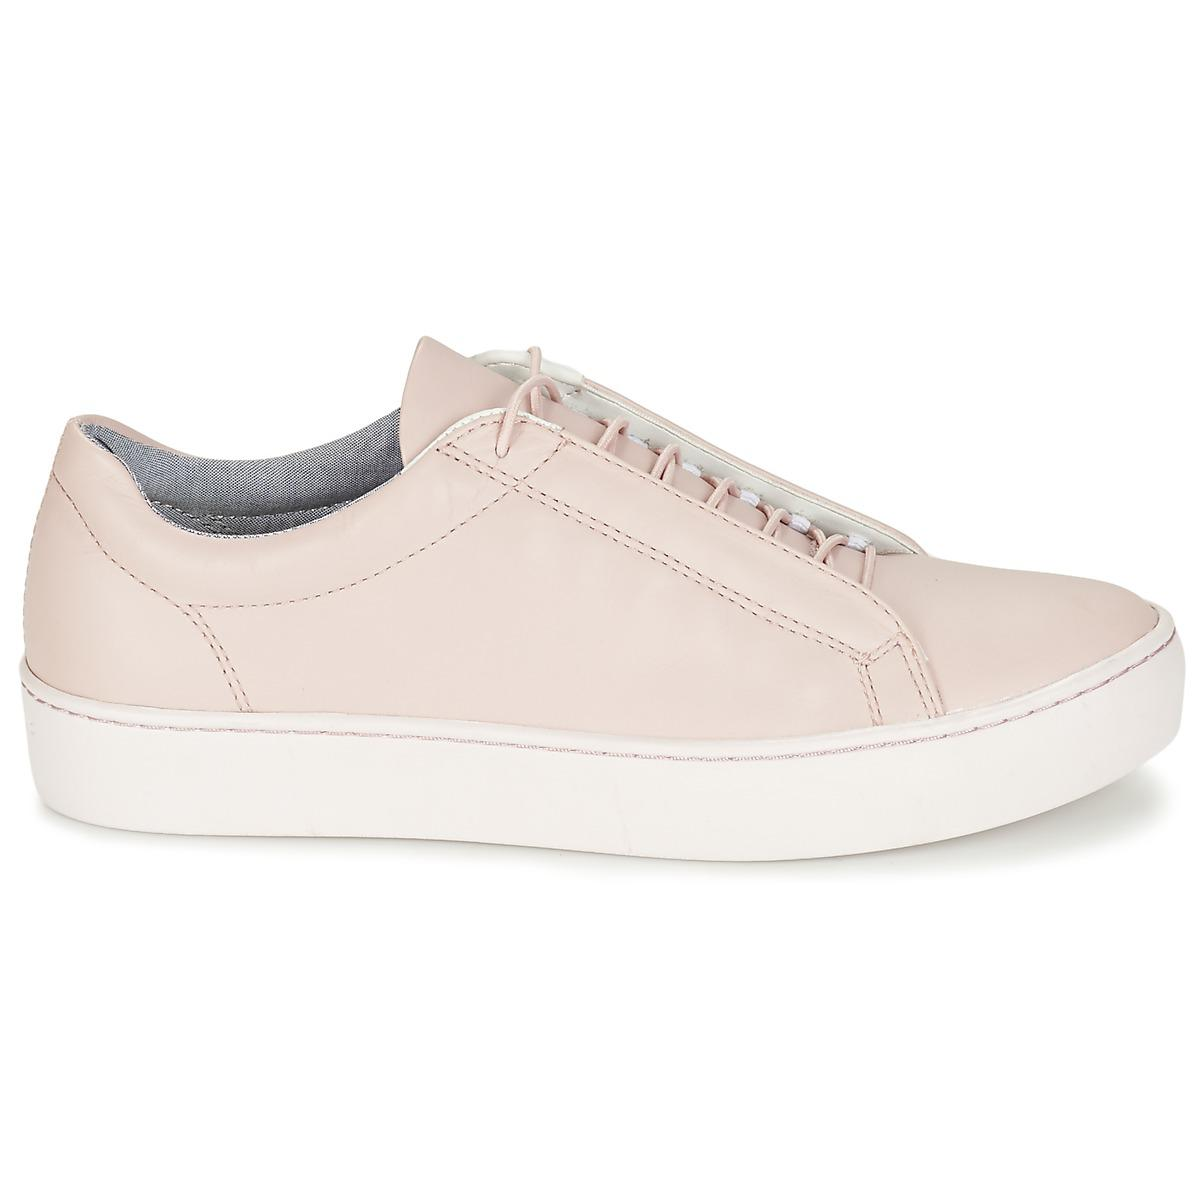 7fab08d53b8a Vagabond - Zoe Women s Shoes (trainers) In Pink - Lyst. View fullscreen